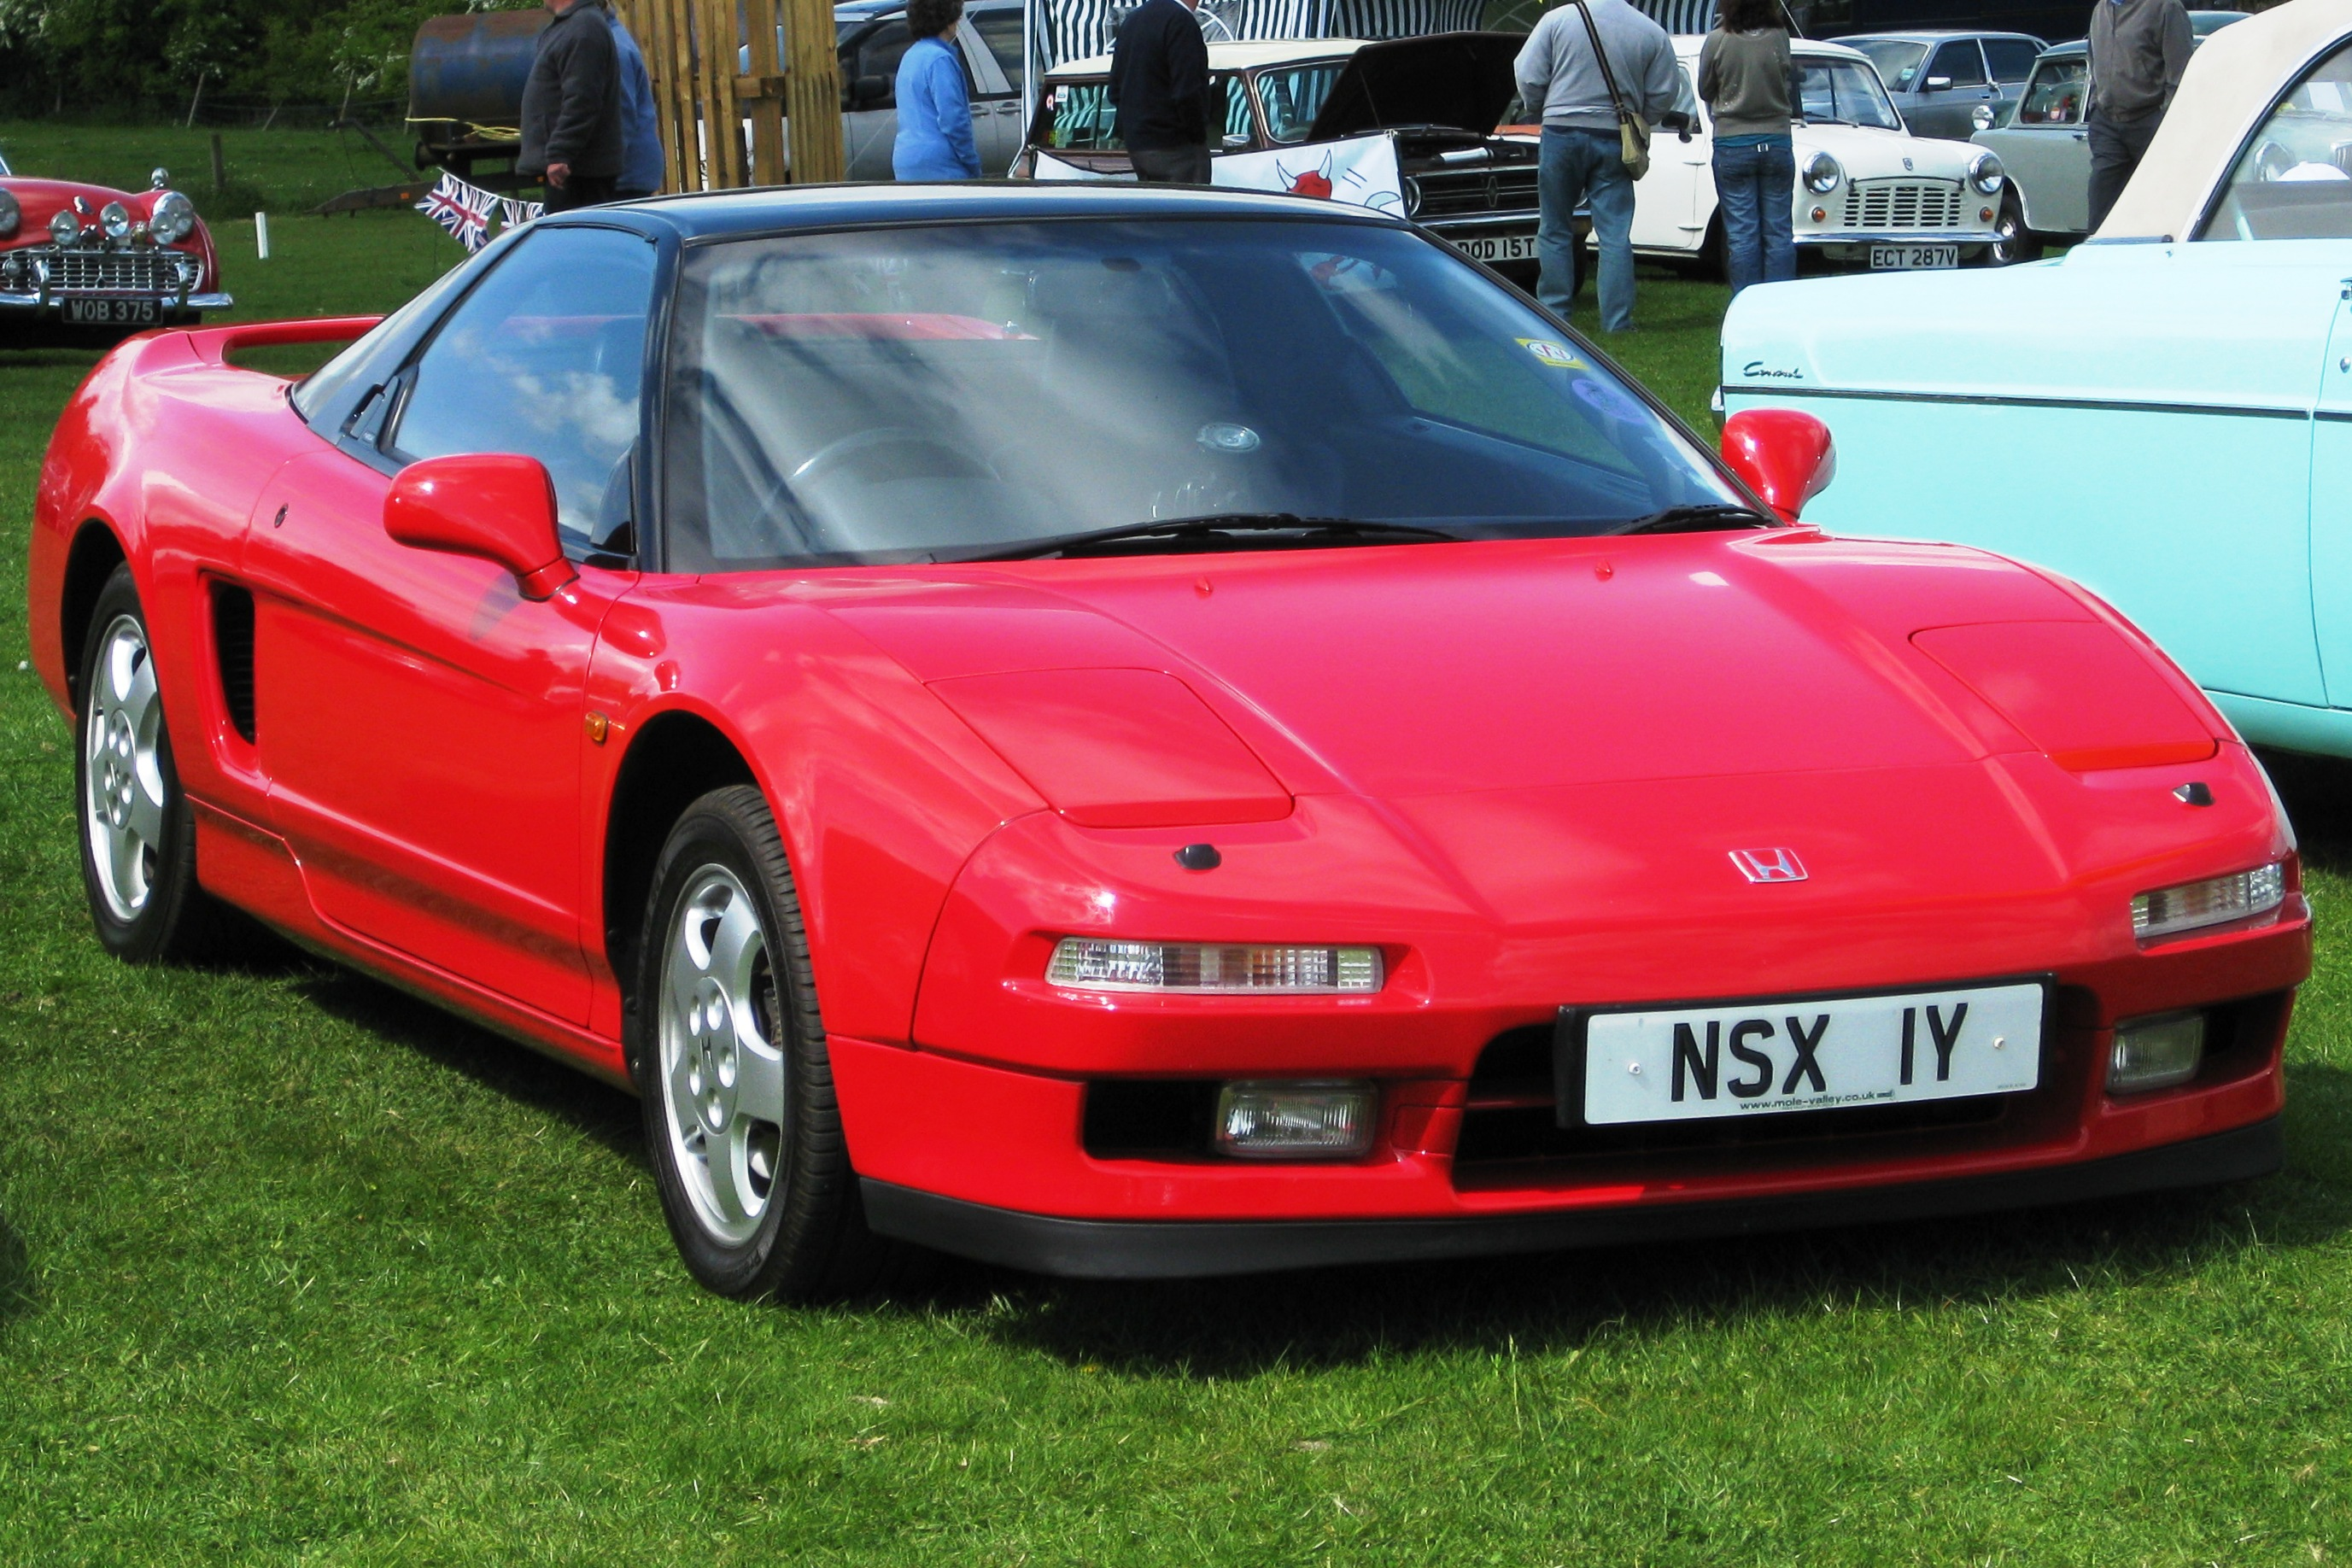 Honda nsx photo - 2